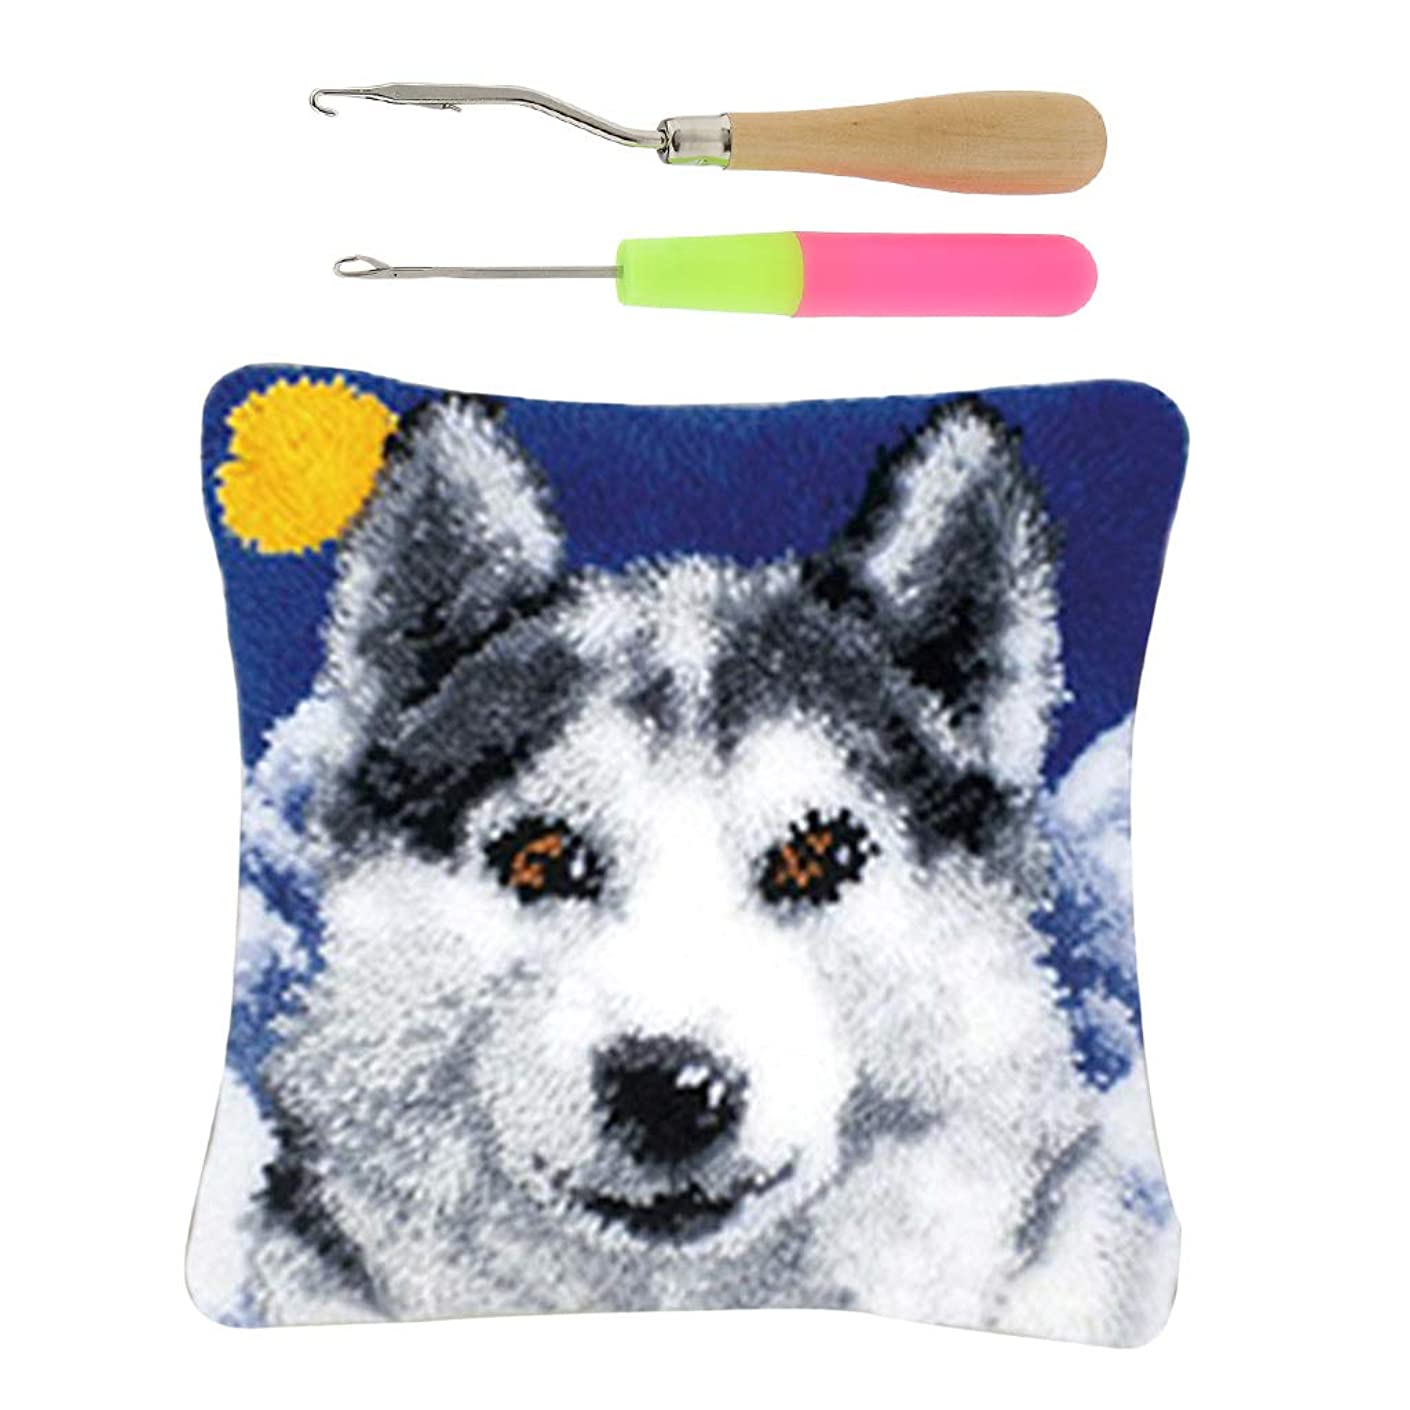 SM SunniMix Wolf Pattern Latch Hook Rug Kits with 2pcs Latch Hooks, Beginners Kids Adults are Suitable